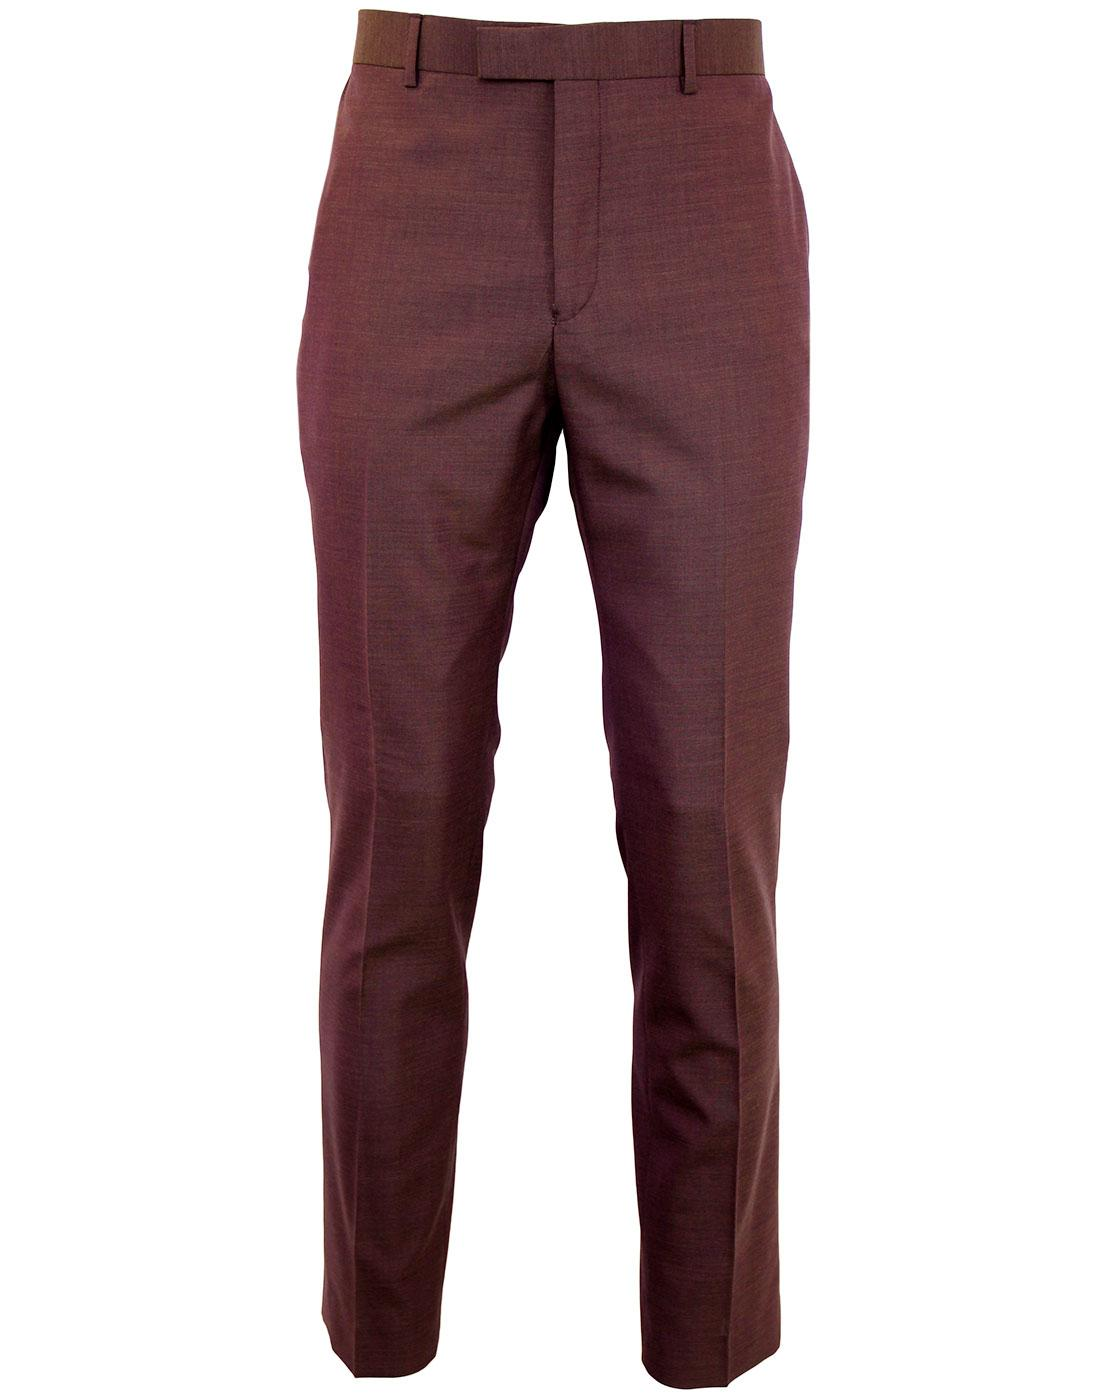 GIBSON LONDON Mod Slim Plum Tonic Suit Trousers